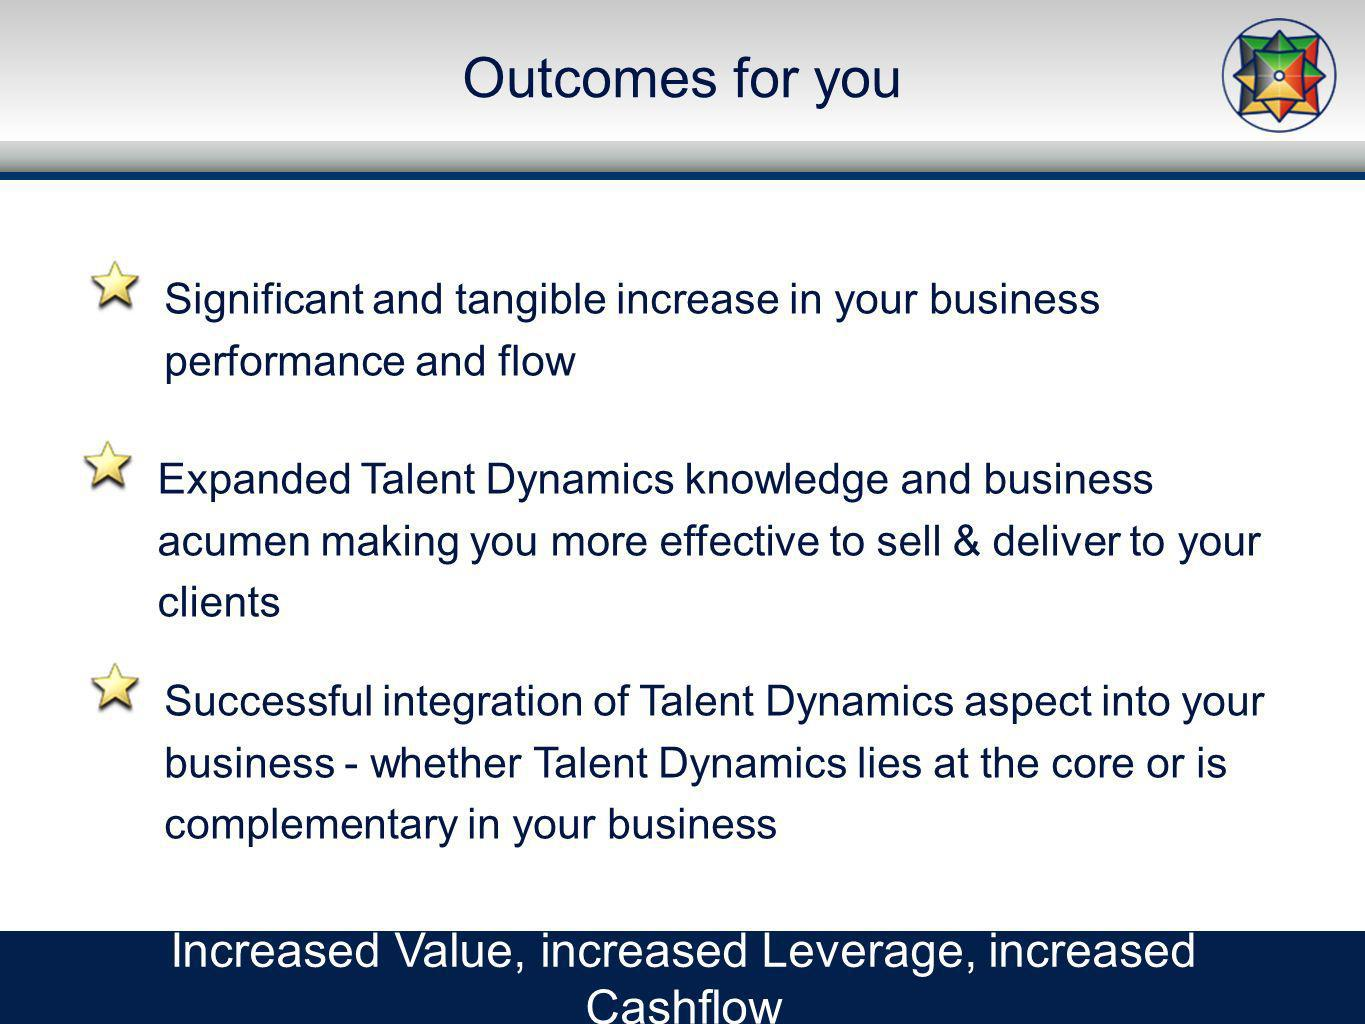 Outcomes for you Increased Value, increased Leverage, increased Cashflow Expanded Talent Dynamics knowledge and business acumen making you more effective to sell & deliver to your clients Significant and tangible increase in your business performance and flow Successful integration of Talent Dynamics aspect into your business - whether Talent Dynamics lies at the core or is complementary in your business